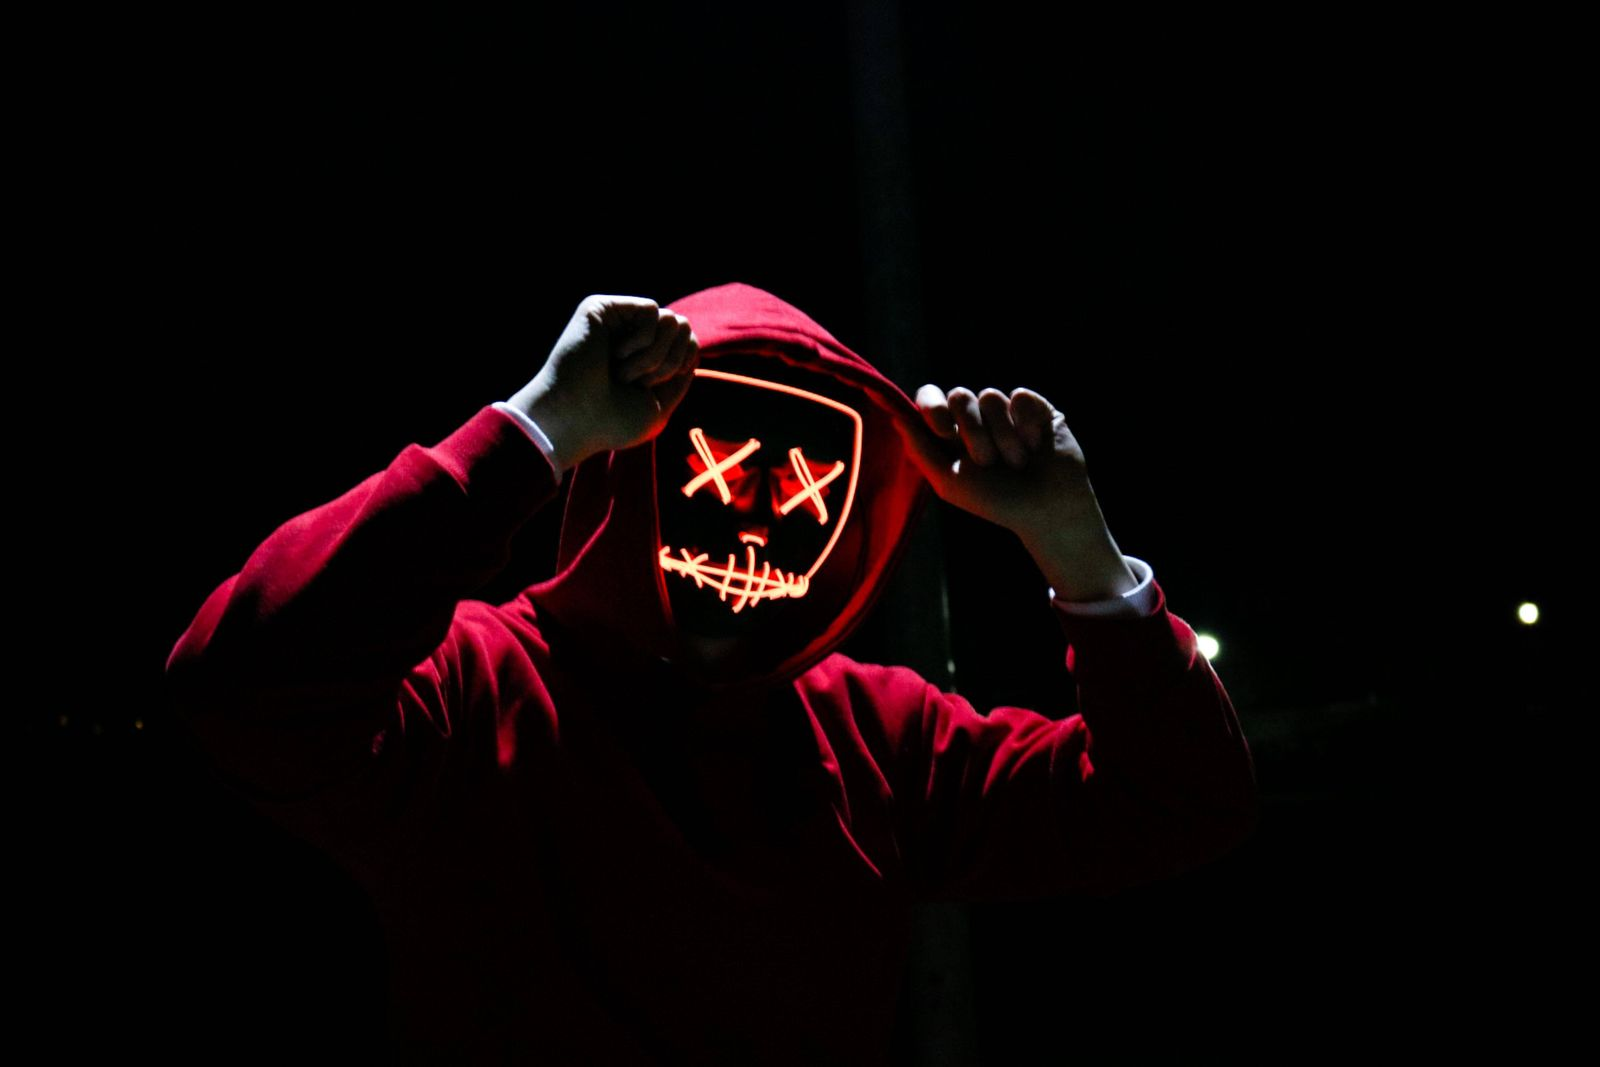 A Man Wearing A Red Hoodie With Red Glowing Mask In The Dark Backgroun Washington, DC, United States PUBLICATIONxINxGER